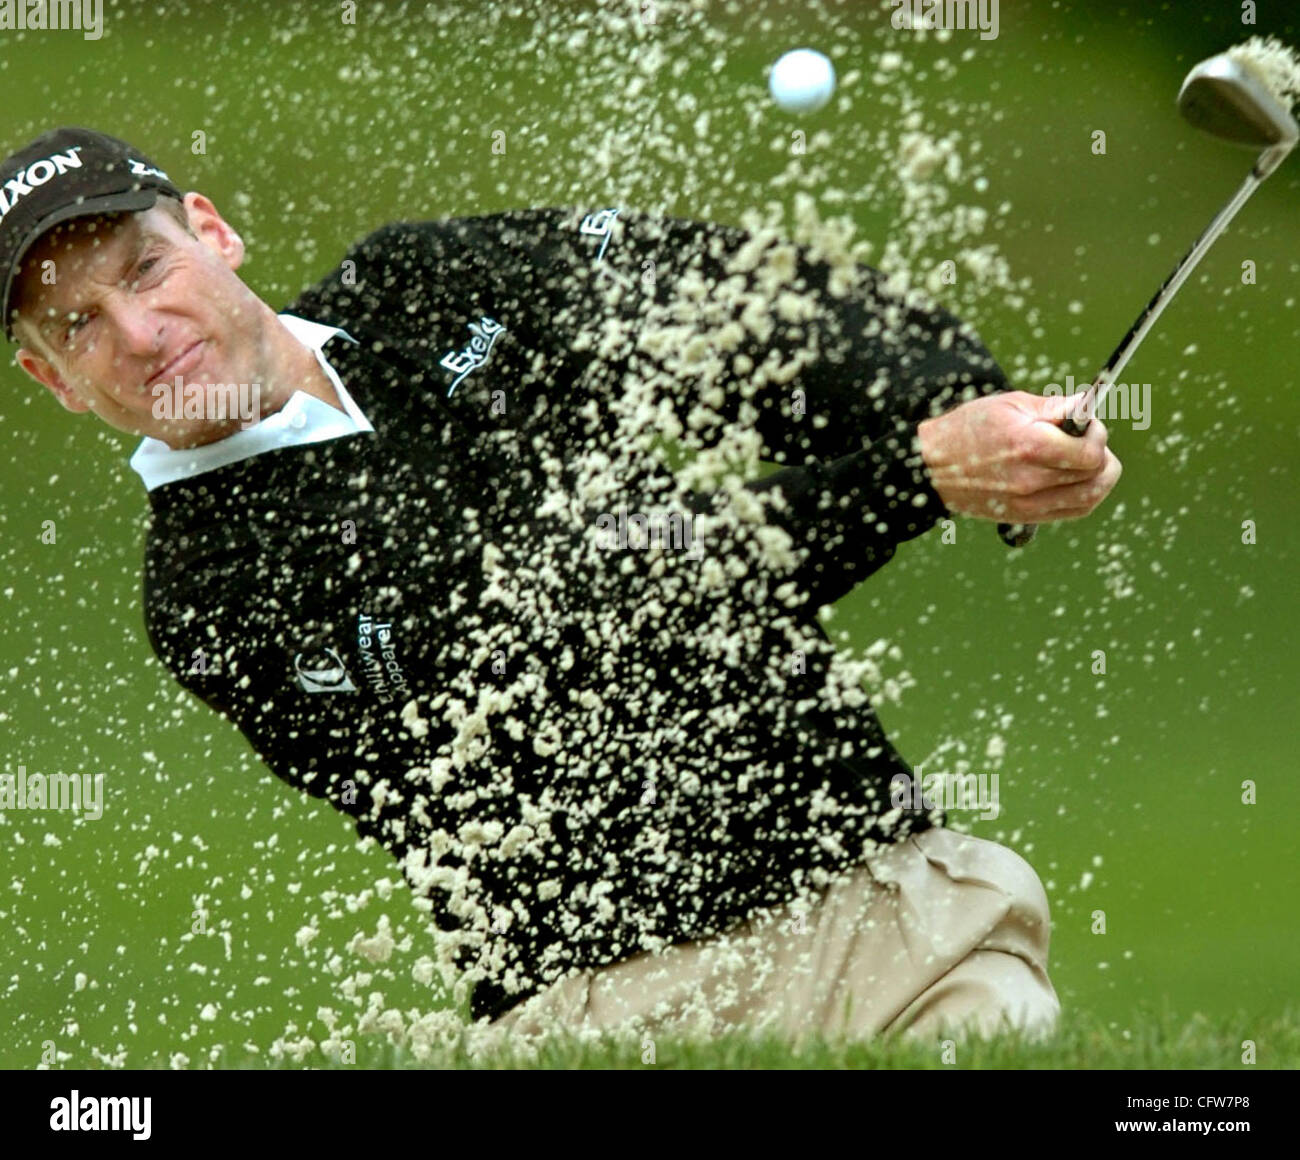 In Pebble Beach, Calif., on Saturday, February 10, 2007, Jim Furyk hits the ball out of the bunker on the 2nd green - Stock Image